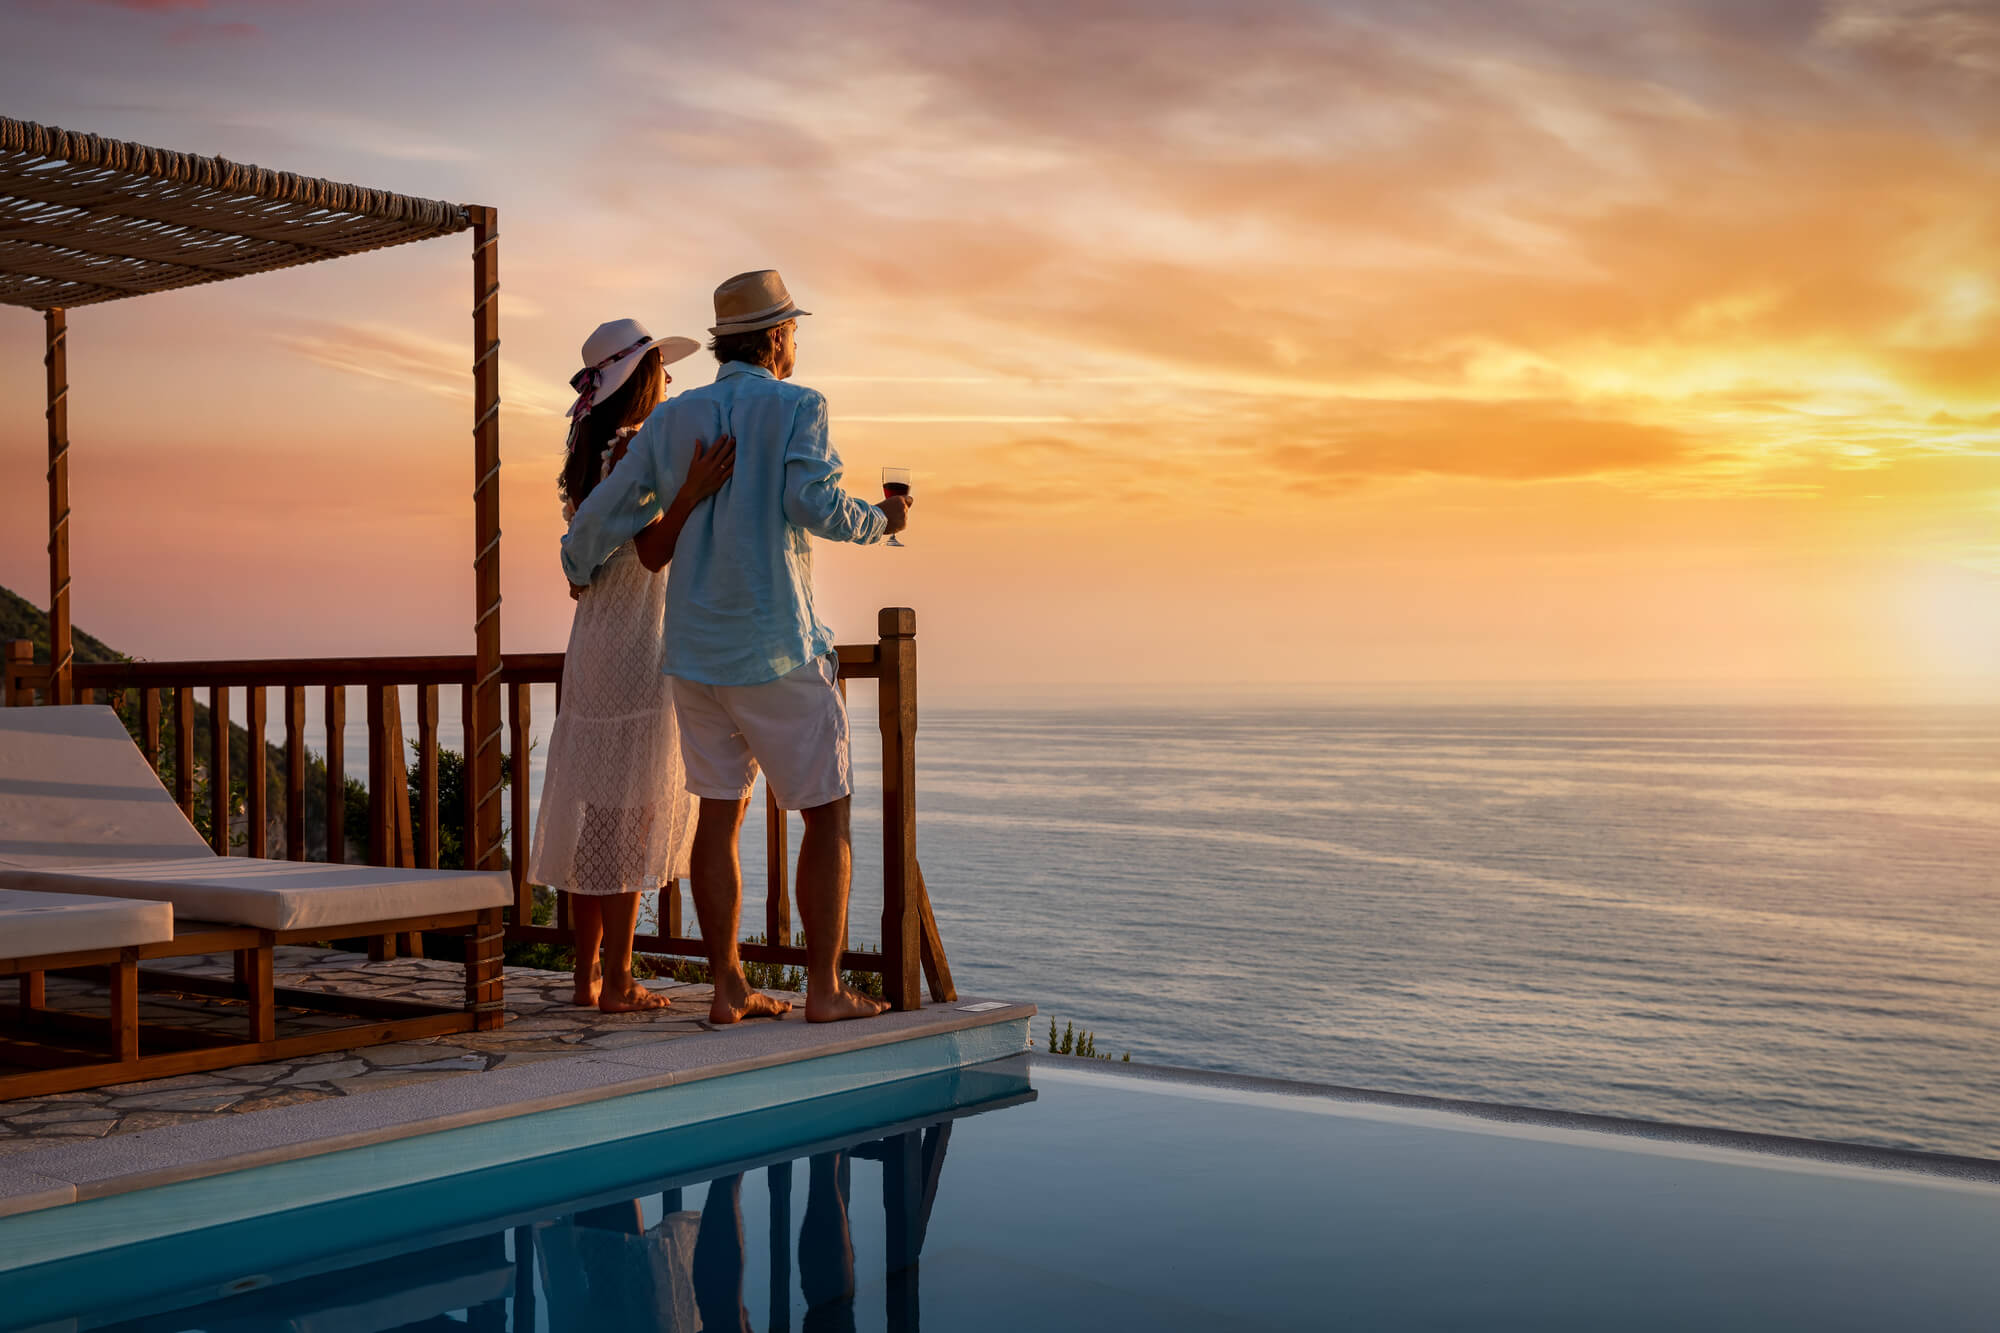 A couple standing on a balcony at sunset looking at the ocean